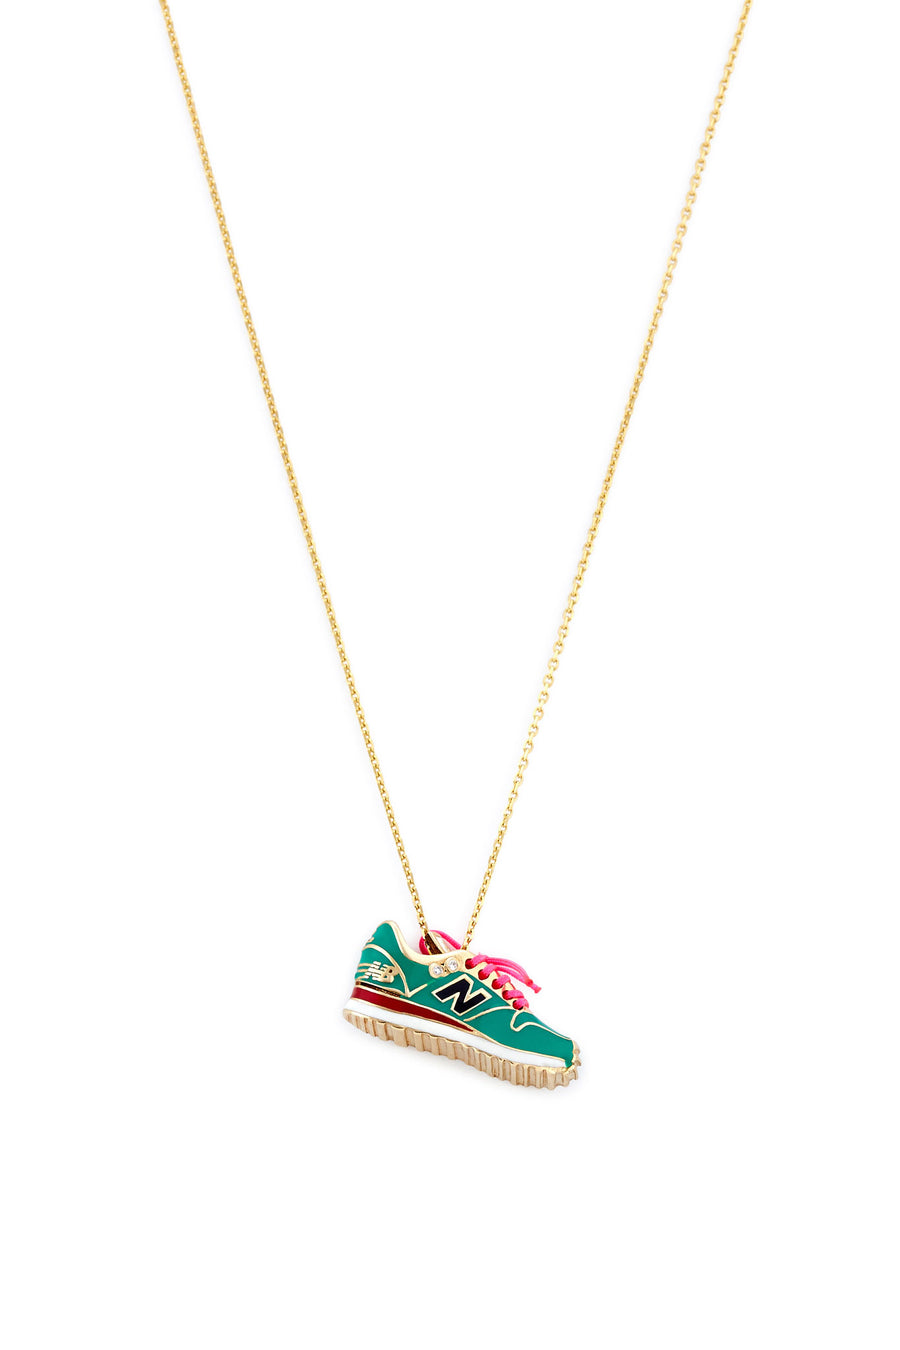 14K Gold and Diamond Green New Balance Necklace